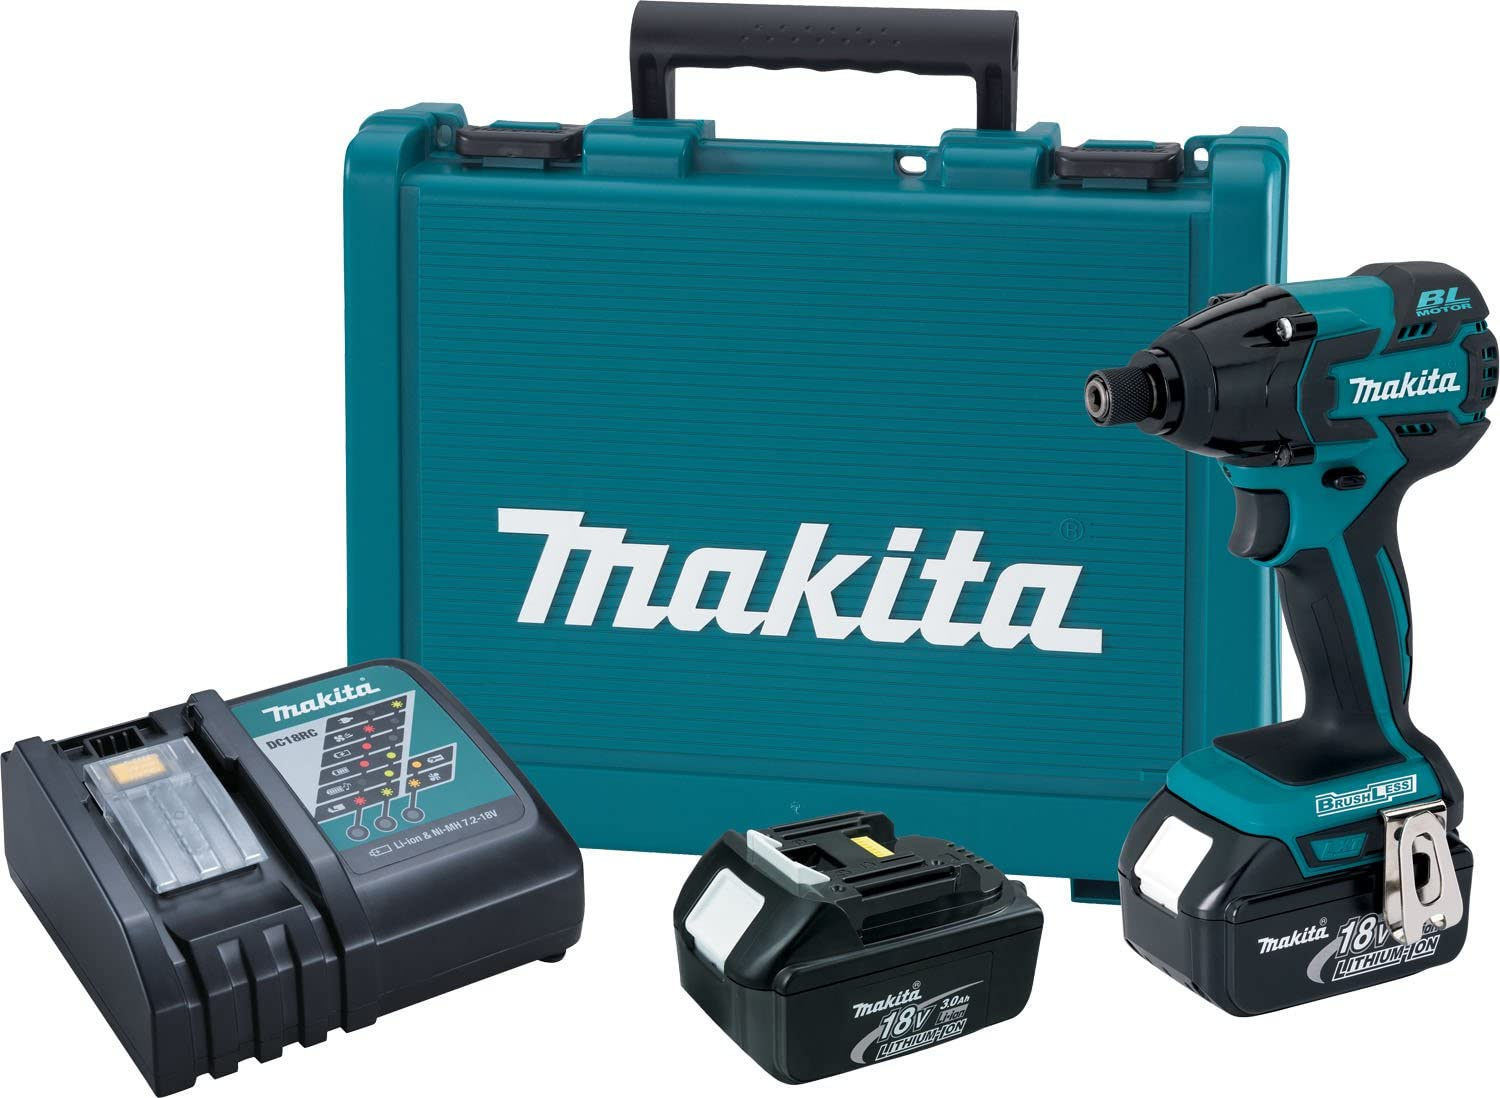 Makita XDT08 18V LXT Lithium-Ion Brushless Cordless Impact Driver Kit Discontinued by Manufacturer